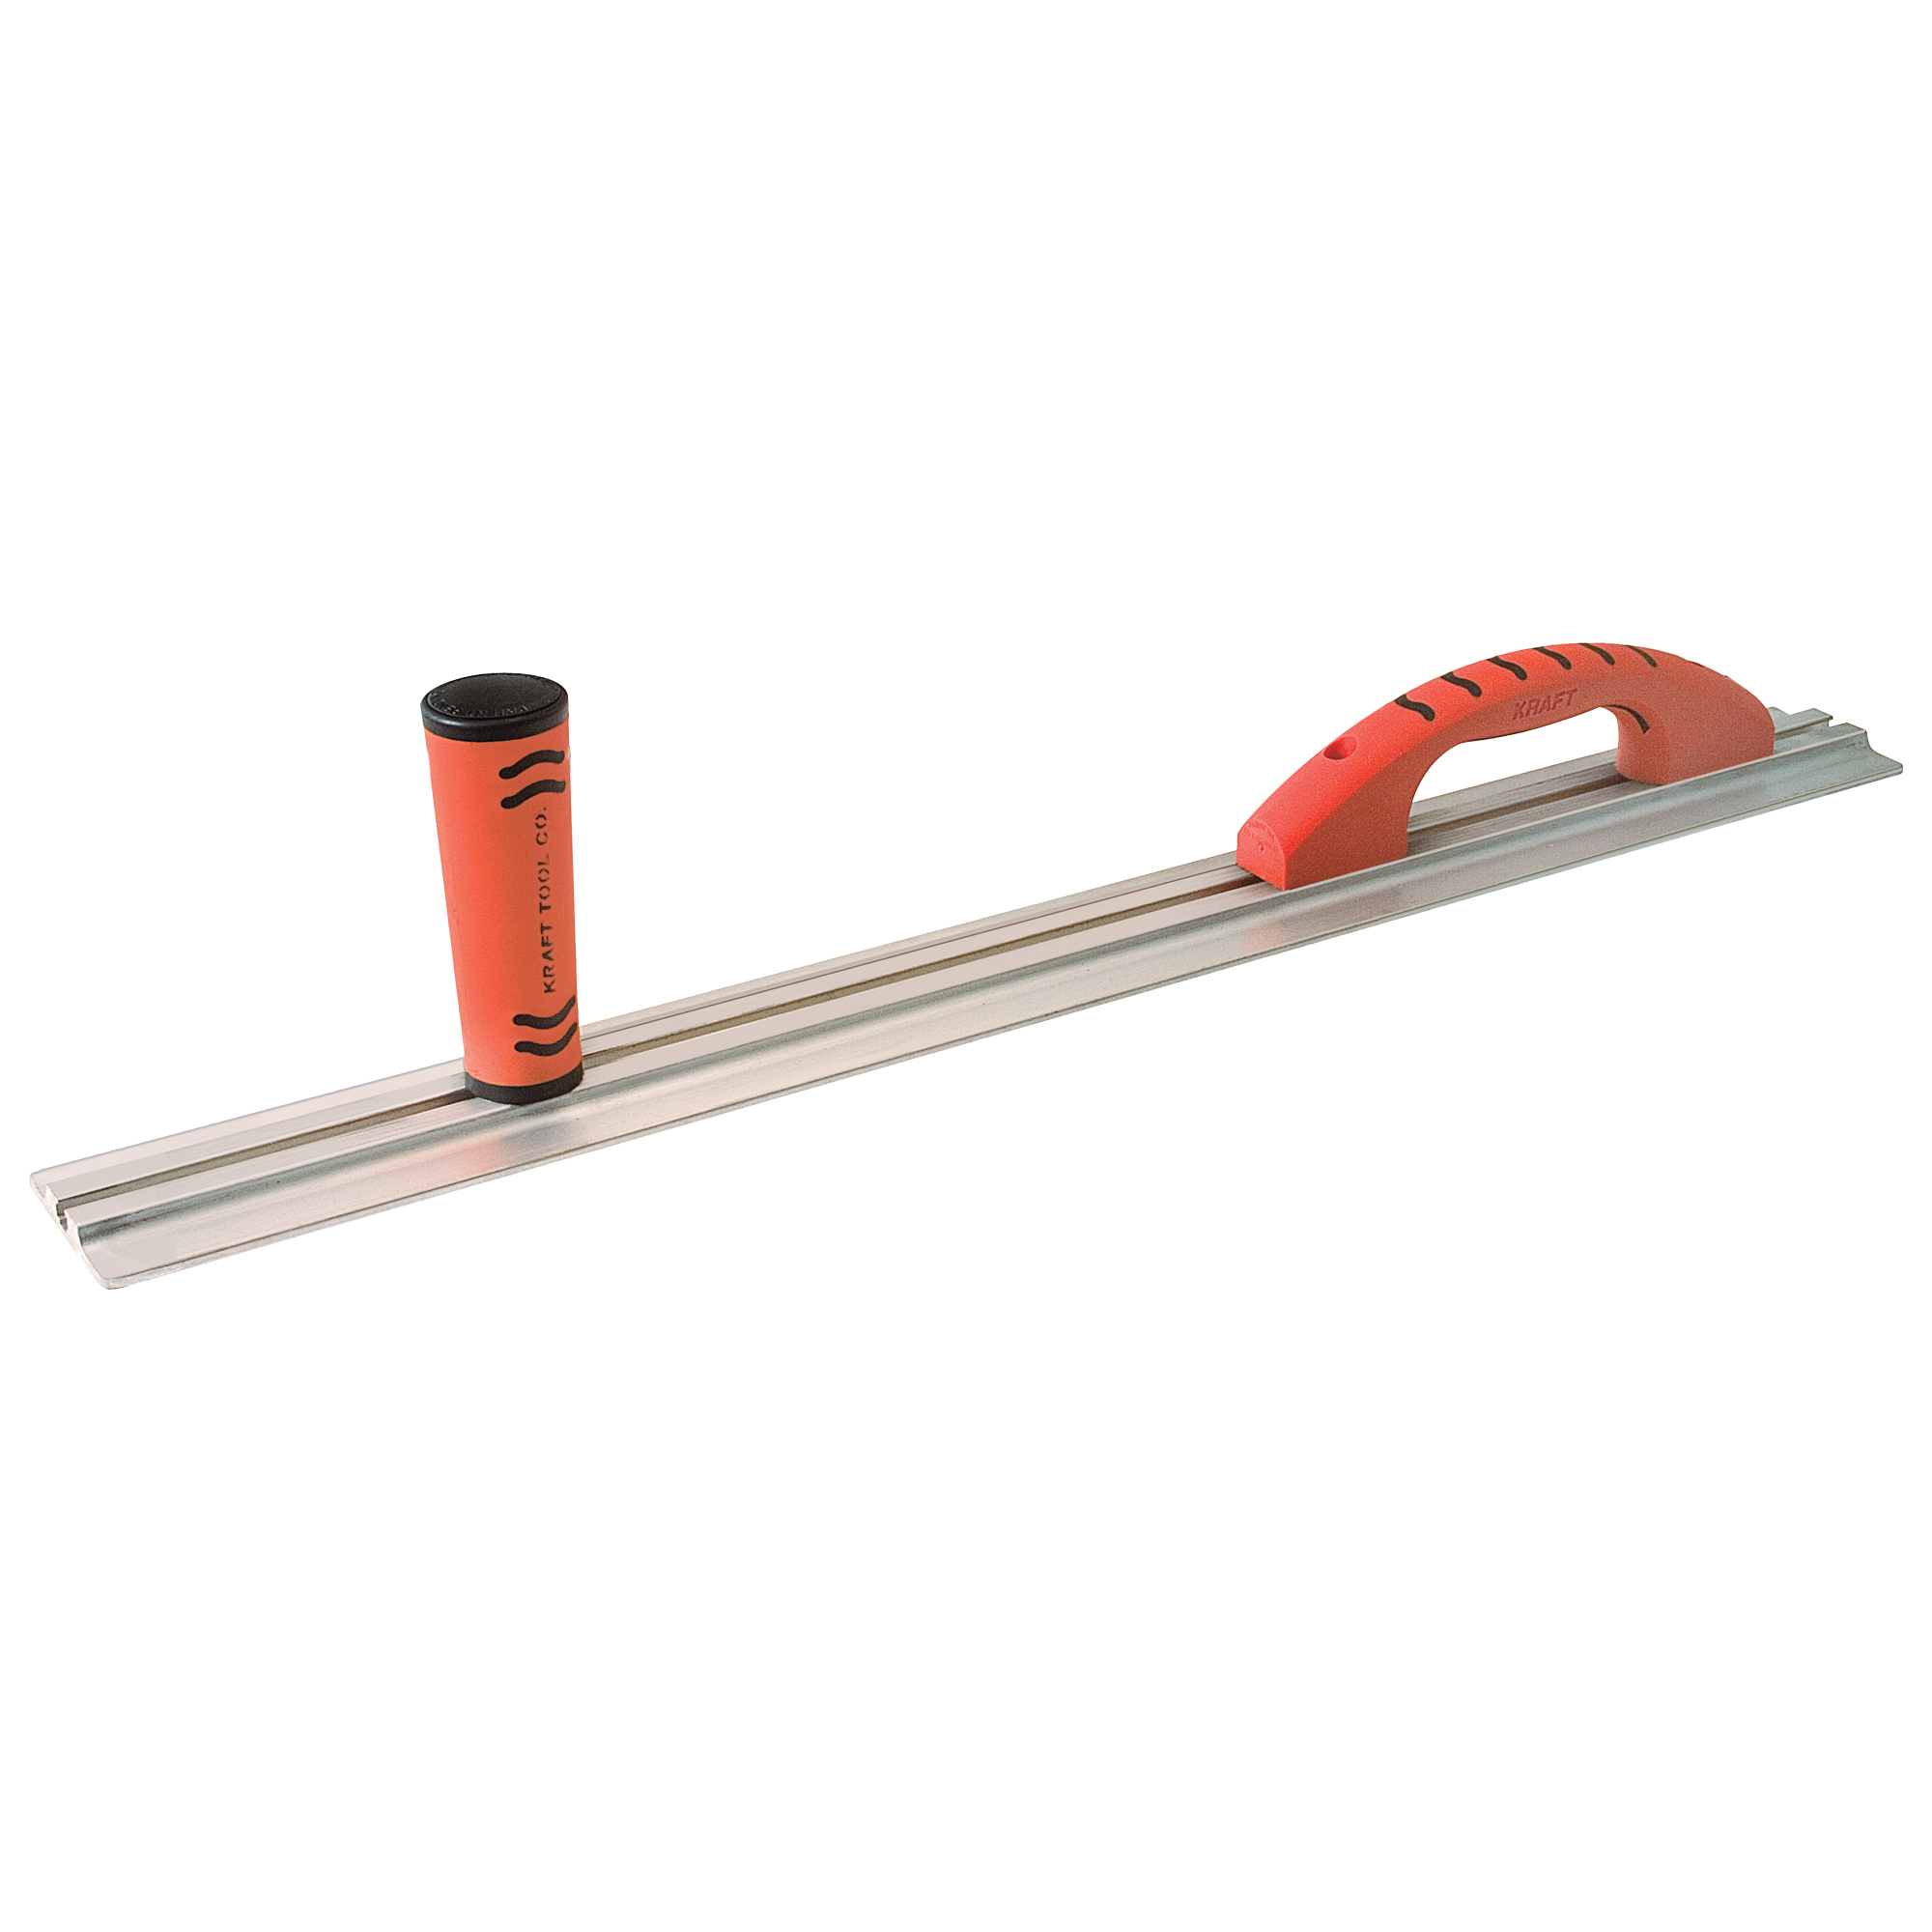 36inch X3-1/4inch Magnesium Darby With 1 Knob & 1 Proform Handle - Cf033pf - Tools Straight Edges Concrete CF033PF